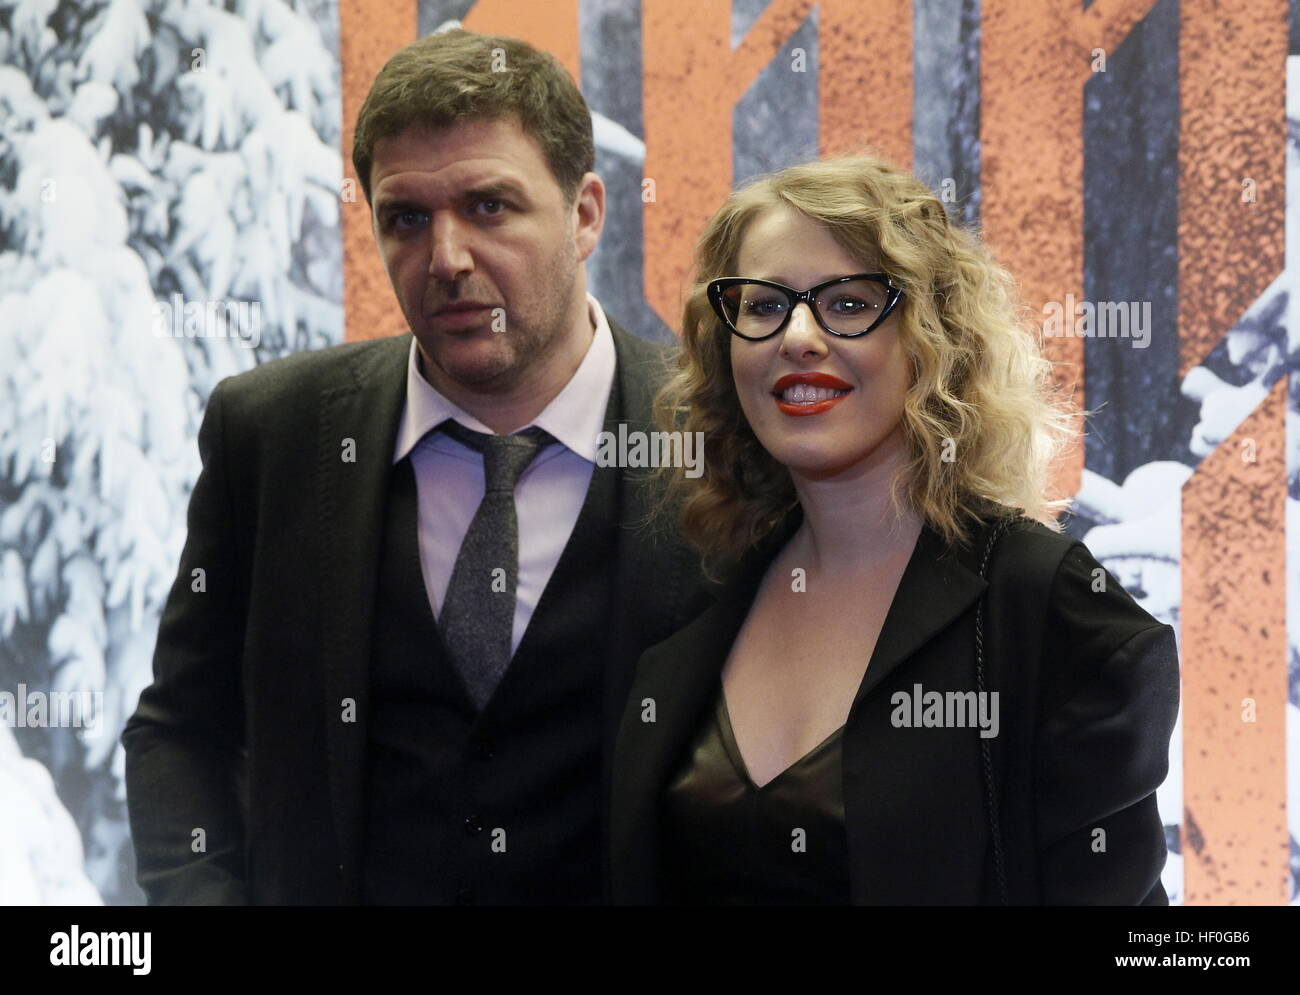 Sobchak and Vitorgan shot in advertising funds for potency